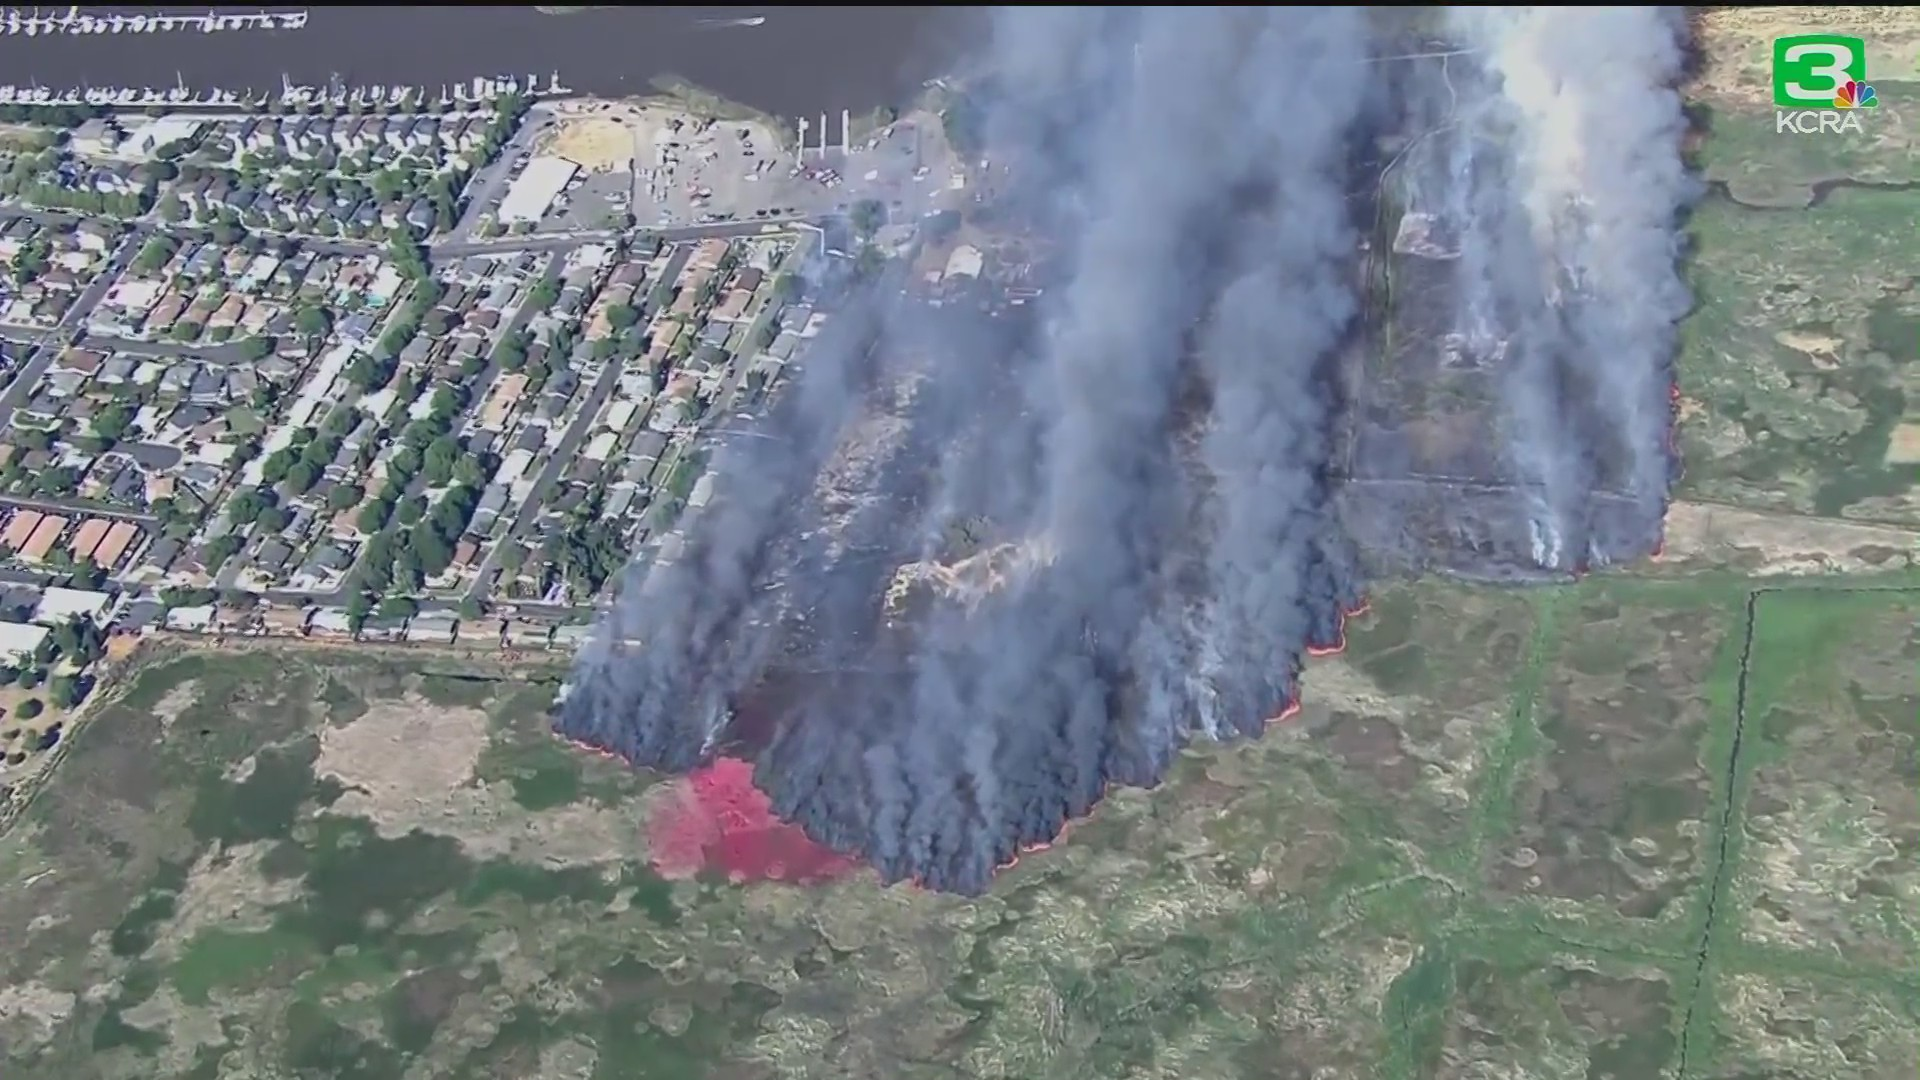 A wildfire burning in Solano County is seen in June 3, 2020. (KCRA via CNN Wire)